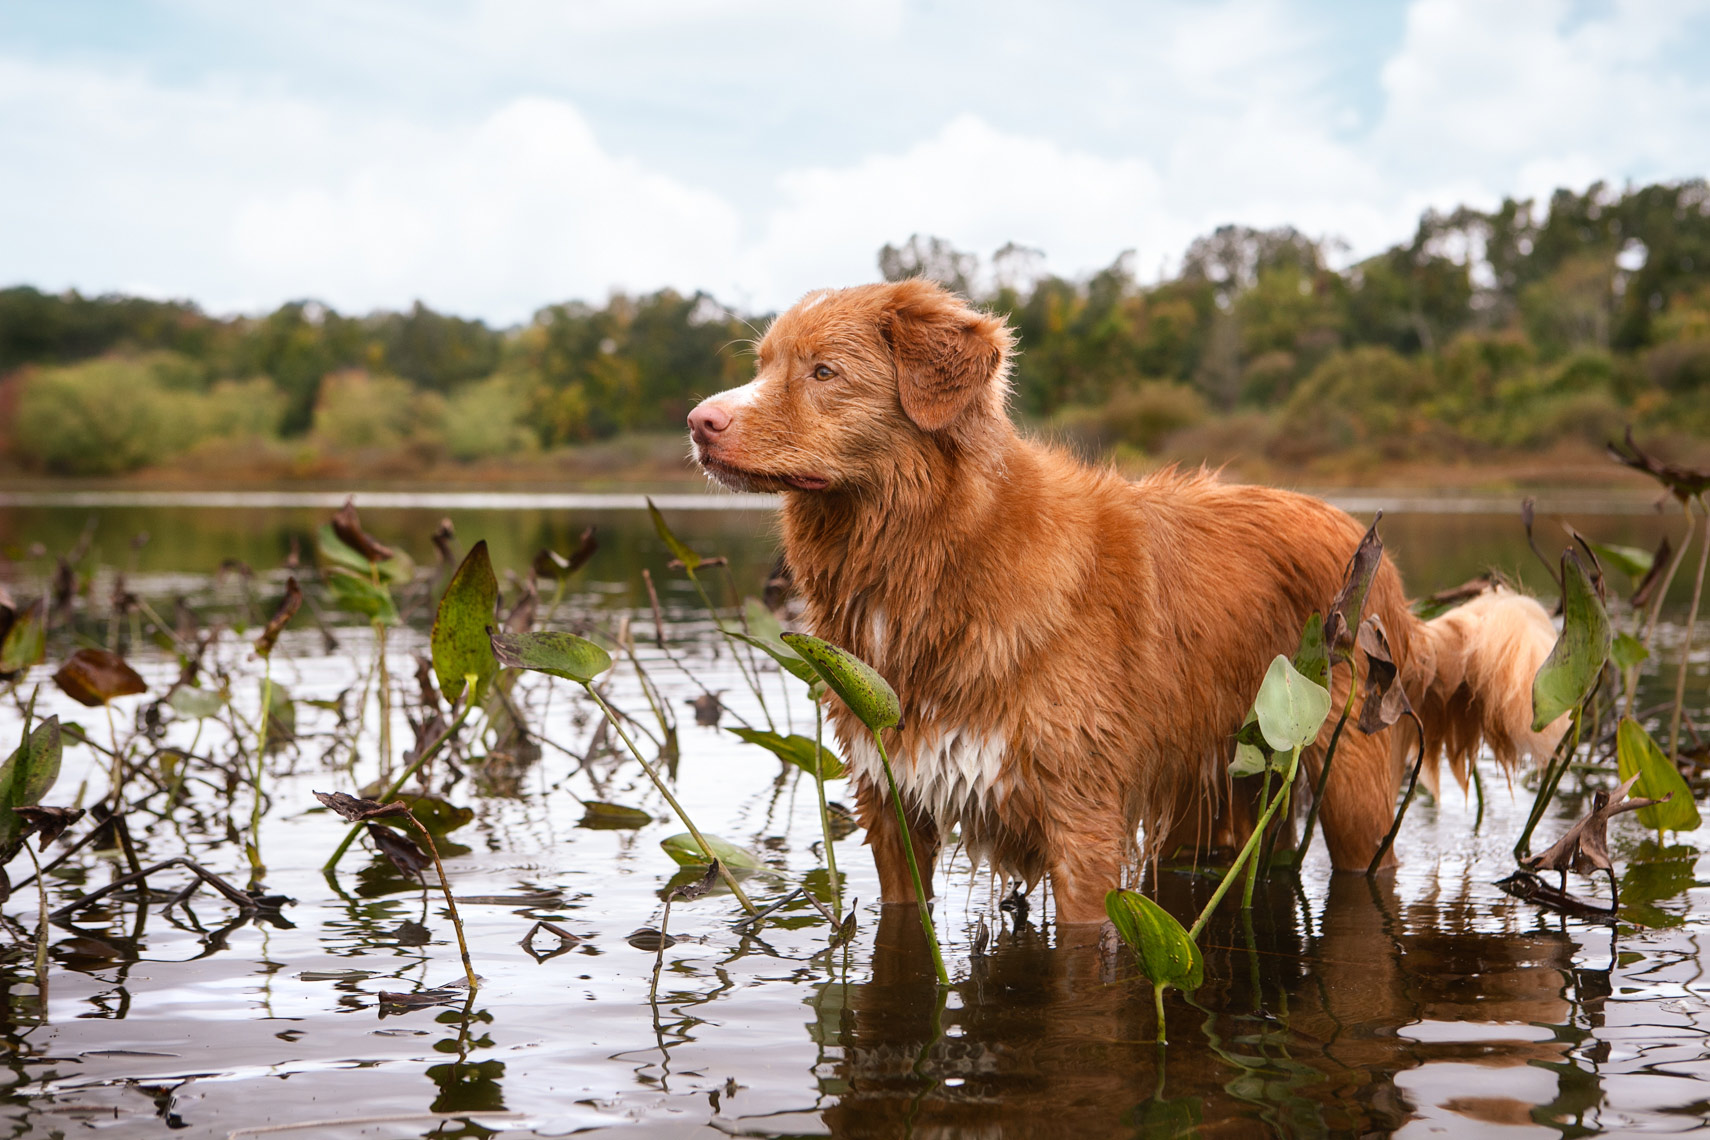 Nova Scotia Duck Tolling Retriever in a lake aw